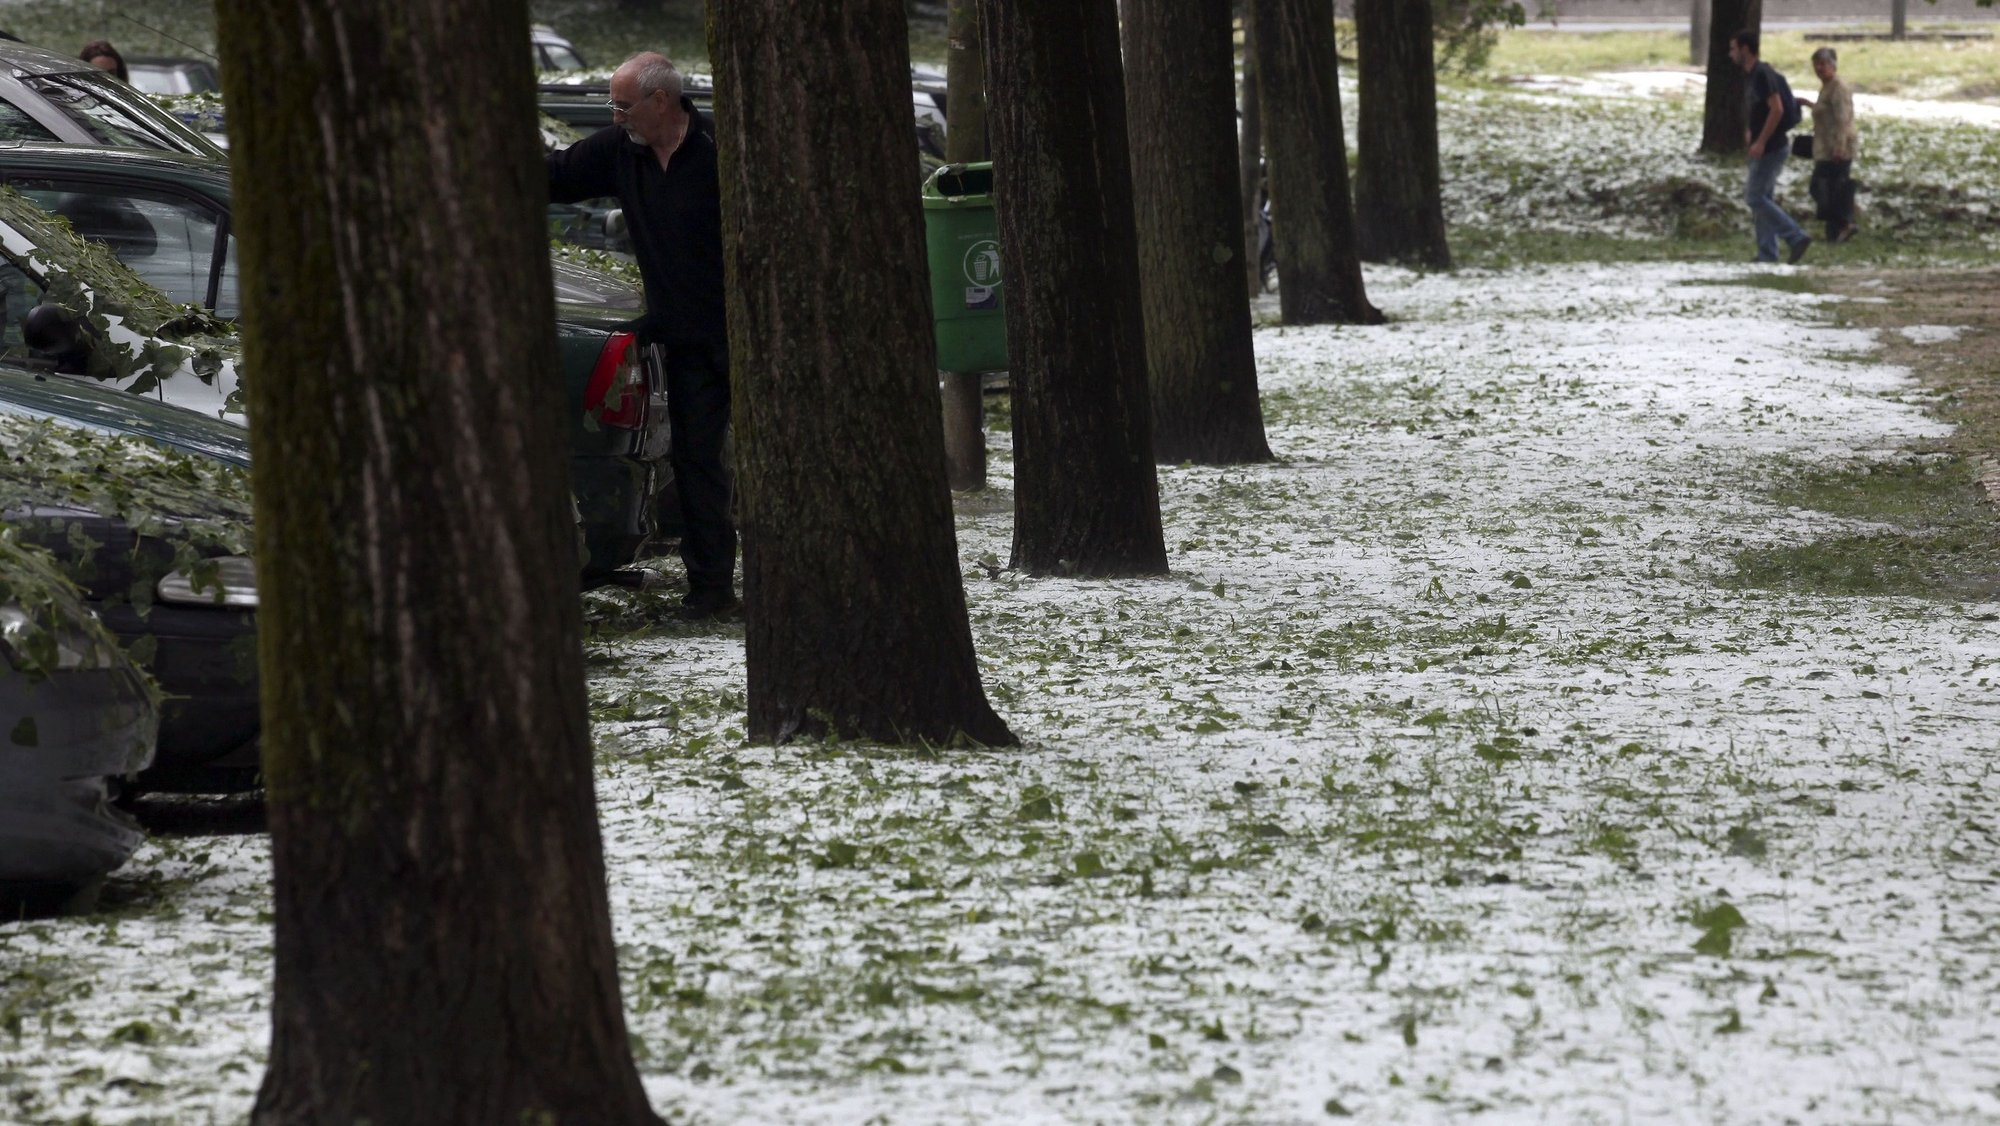 People walks on a park covered with hail after a violent hail storm that hited Lisbon this afternoon covering the streets with a white blanket, Lisbon, Portugal, 29 april 2011.   ANTONIO COTRIM/LUSA